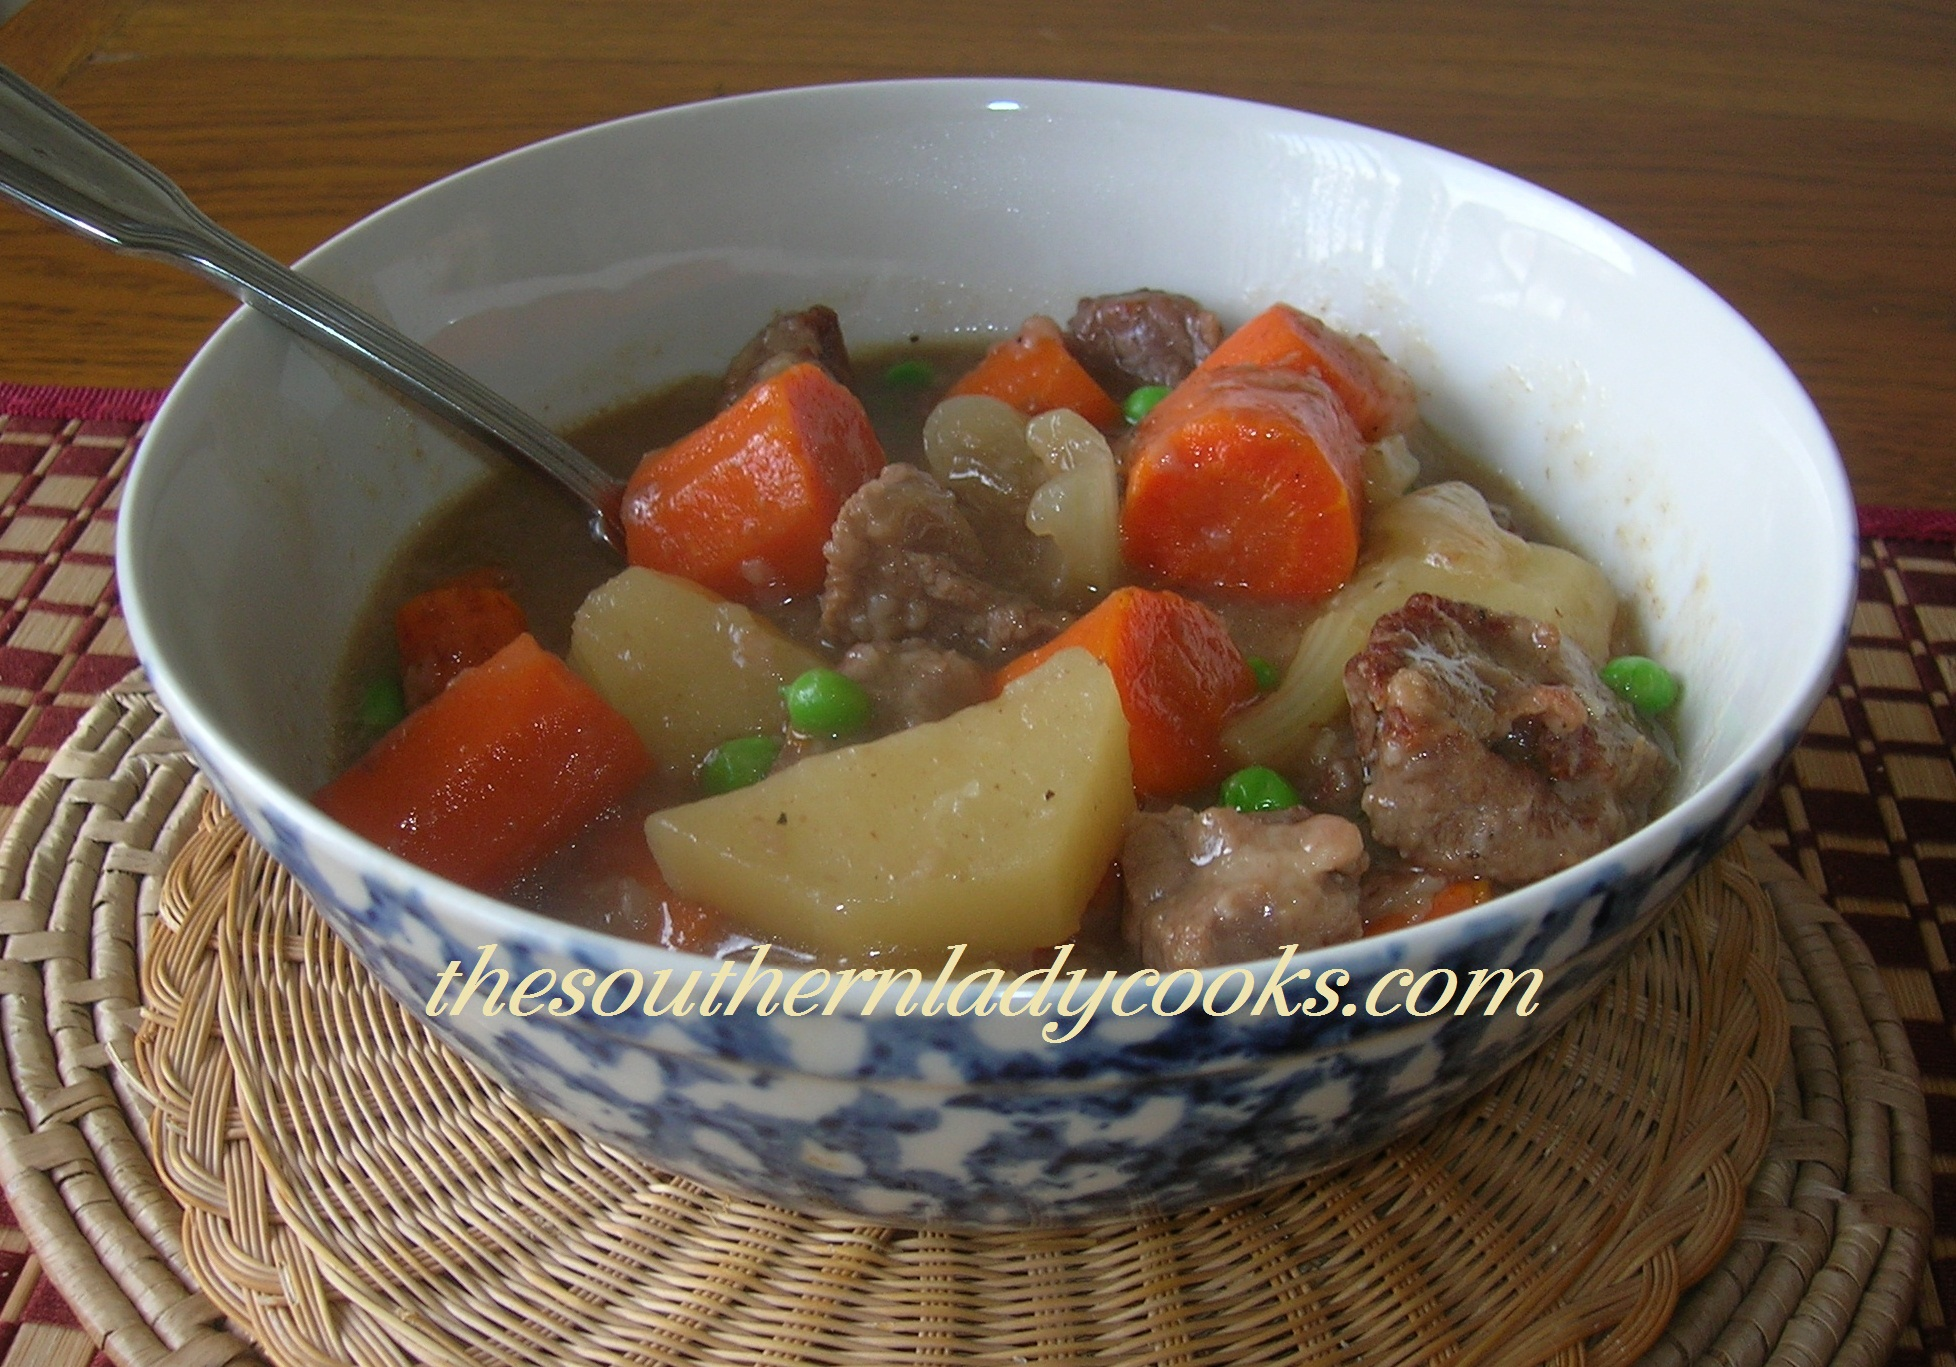 CROCKPOT BEEF STEW | The Southern Lady Cooks